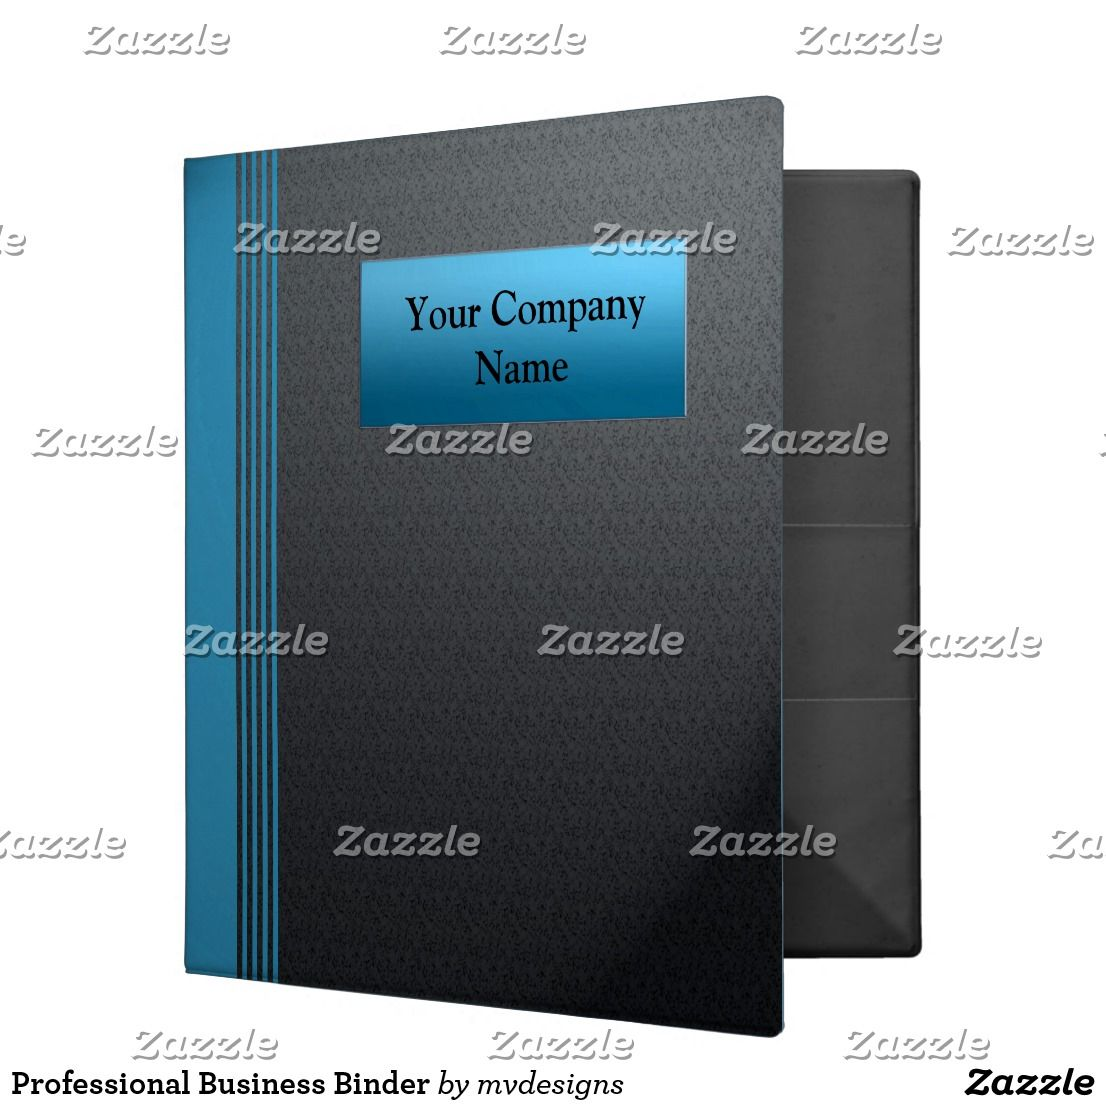 professional business binder